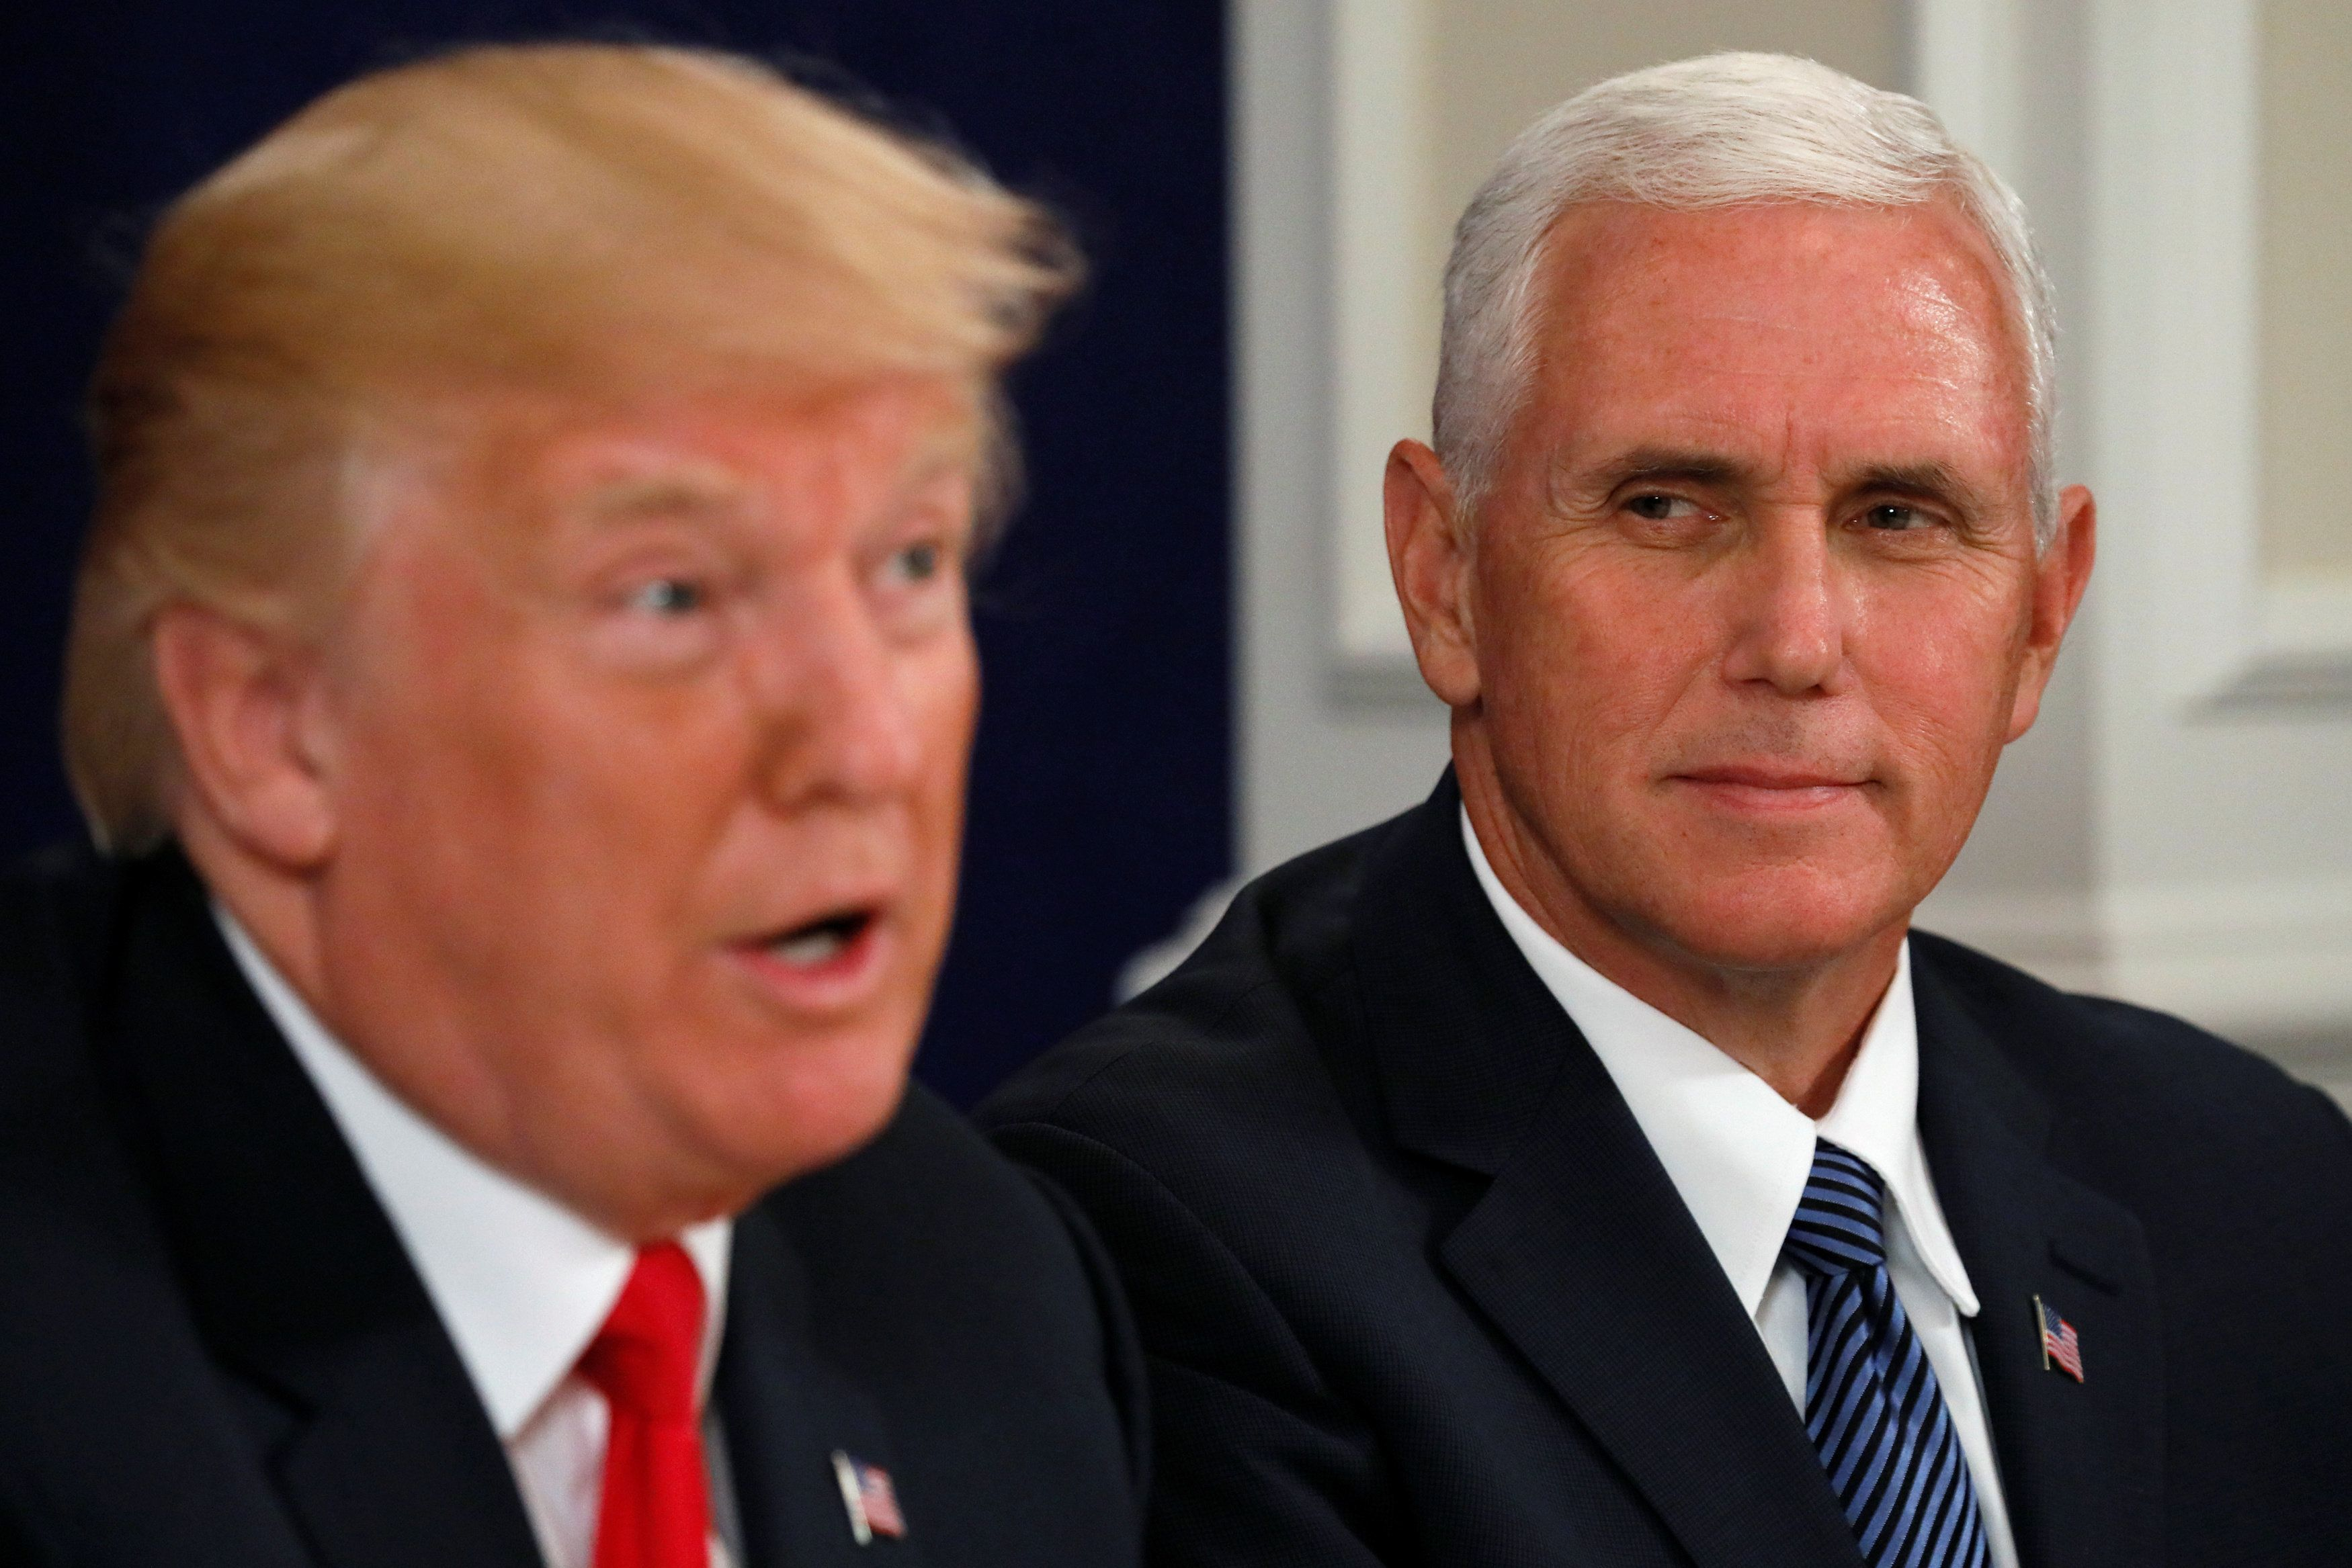 Mike Pence Defends Donald Trump, Slams Media Over Charlottesville Response